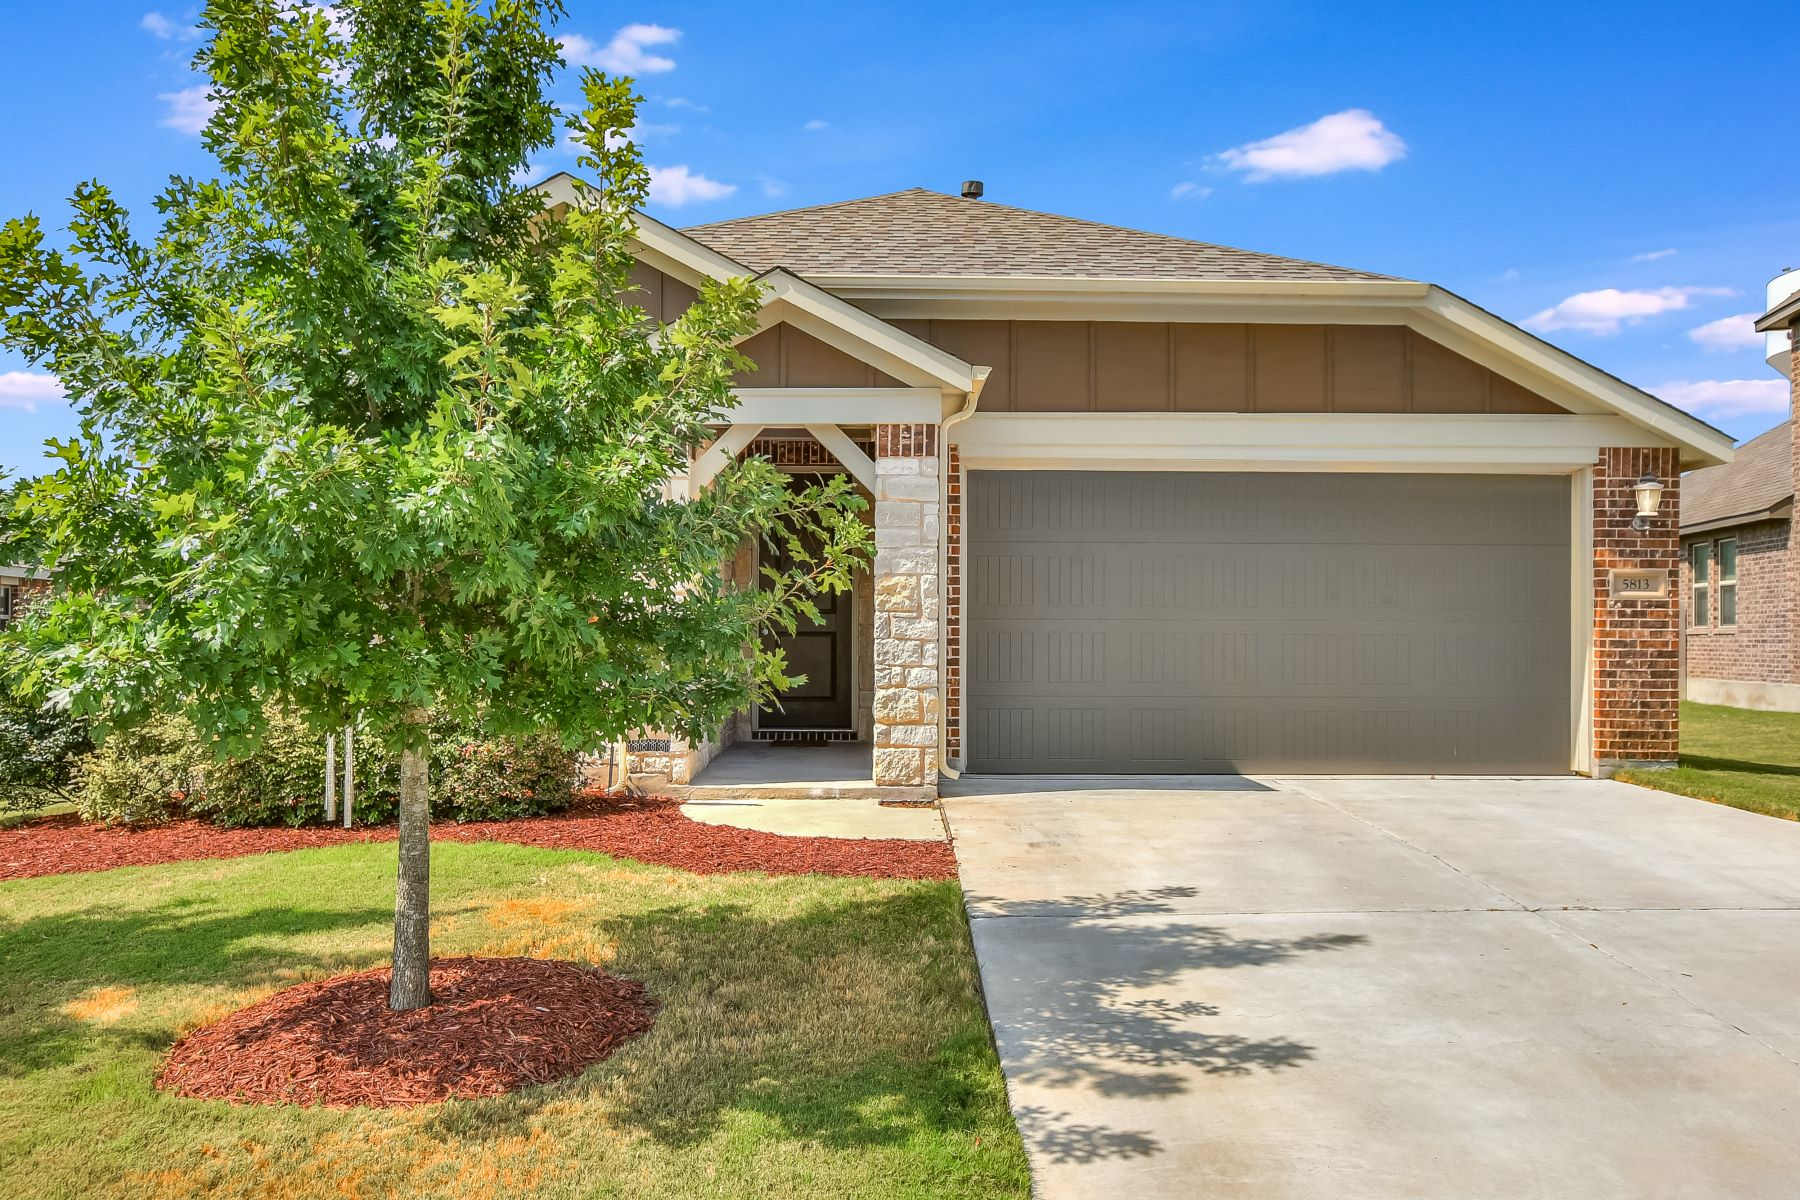 Single Family Homes for Active at 5813 Casstello Drive, Round Rock, TX 78665 5813 Casstello Drive Round Rock, Texas 78665 United States